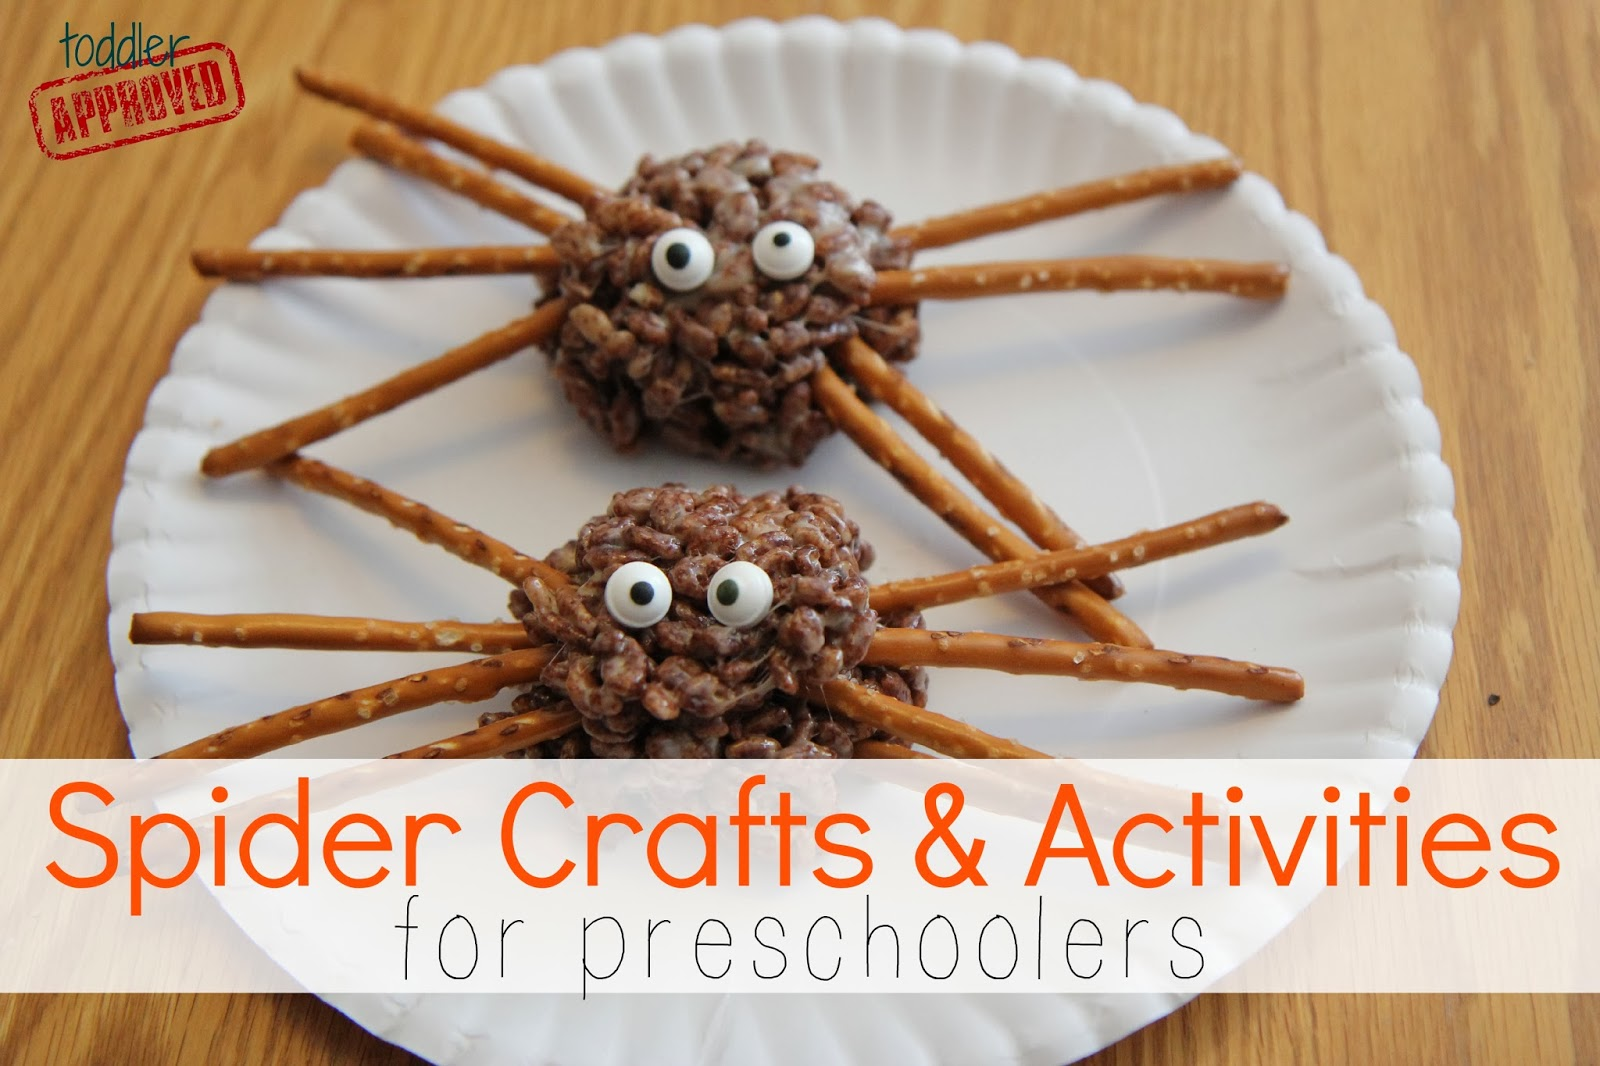 Toddler Approved Spider Crafts Activities For Preschoolers